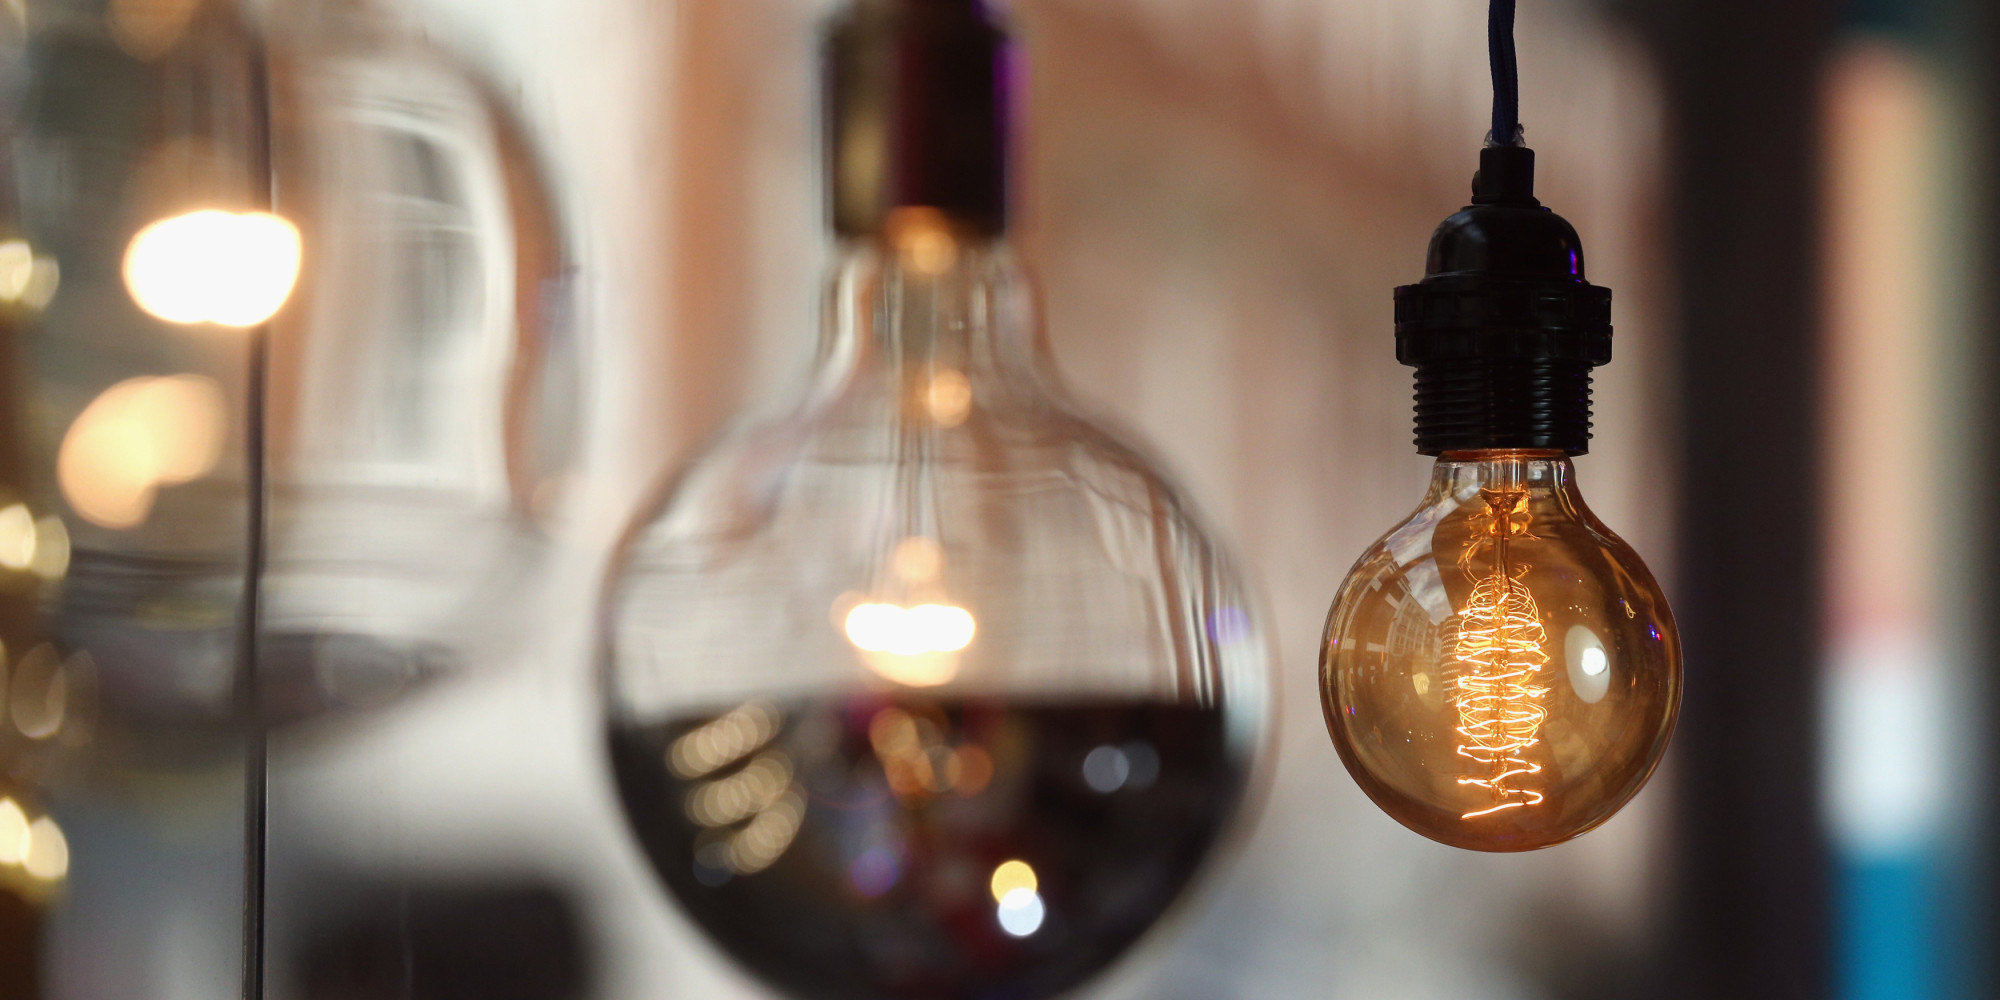 This lightbulb guide will finally tell you the difference between this lightbulb guide will finally tell you the difference between cfls leds halogens huffpost biocorpaavc